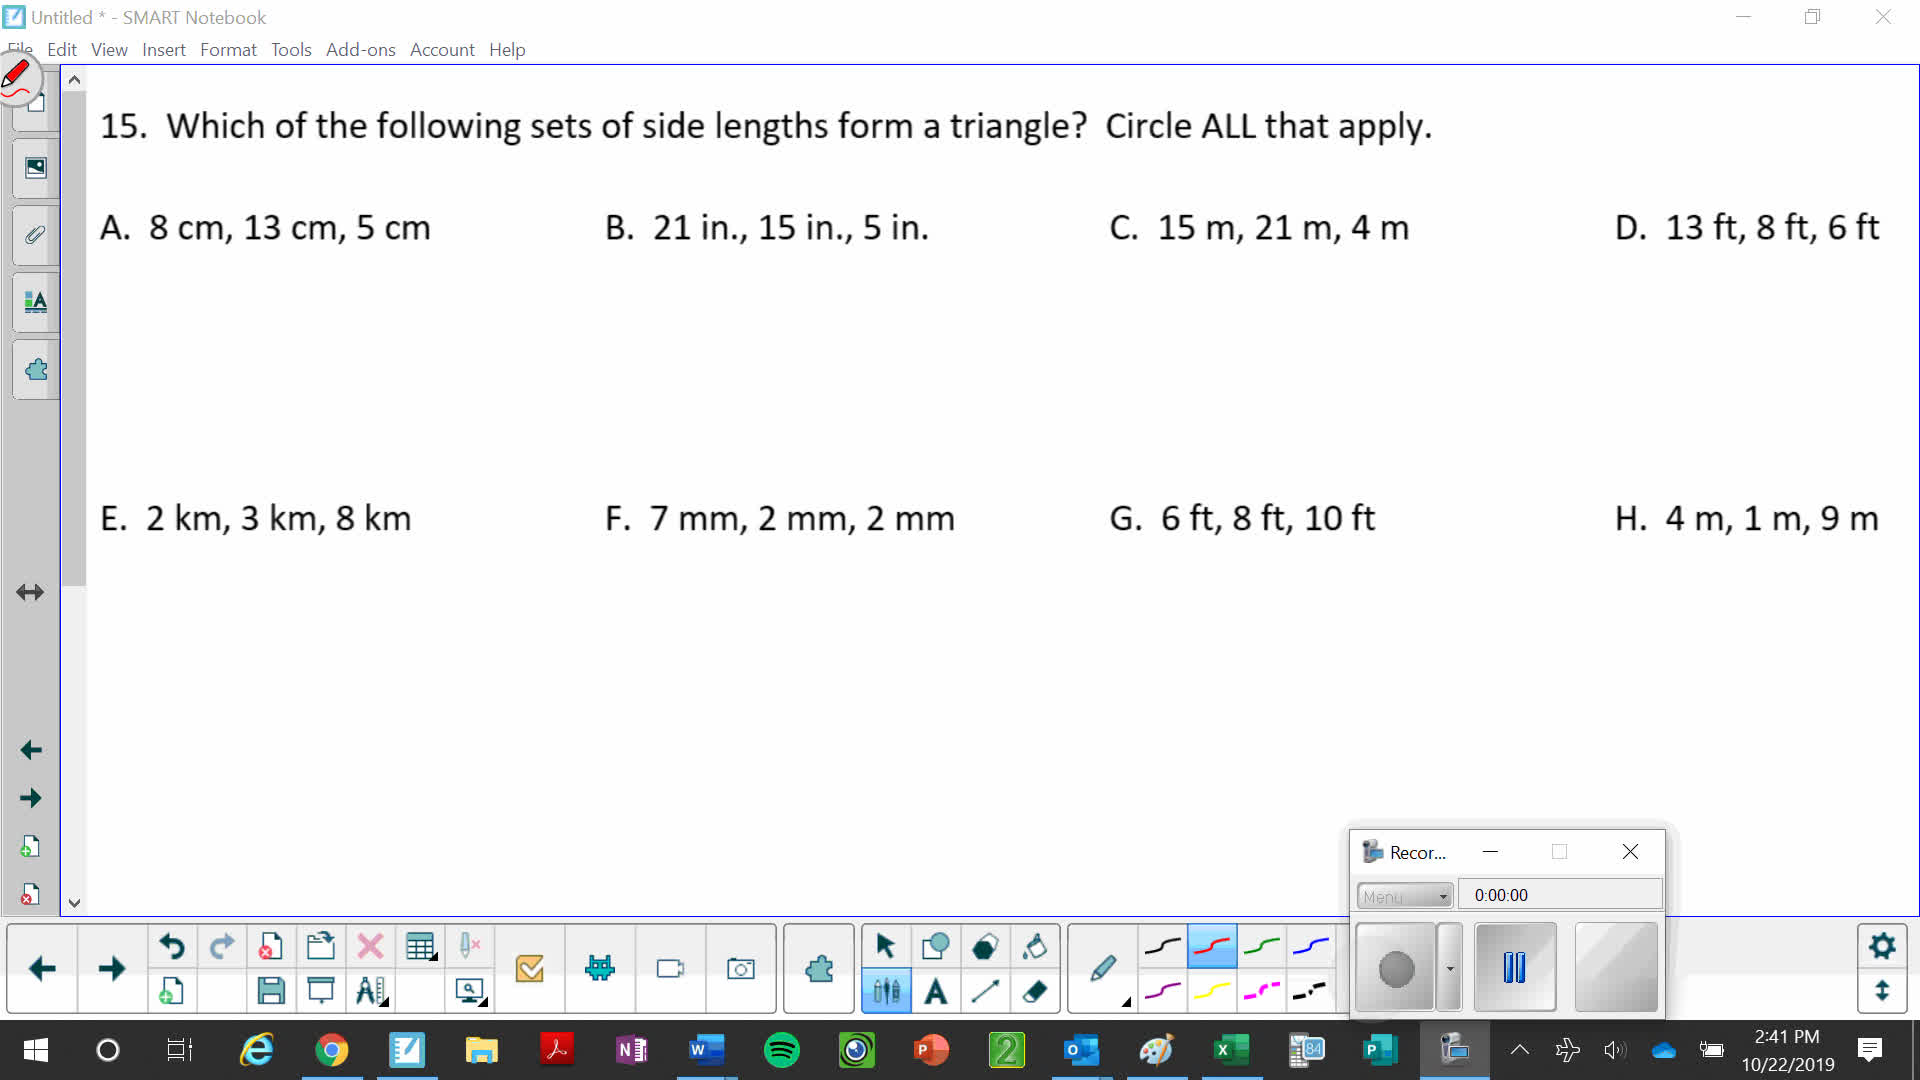 Sets of Side Lengths that Form a Triangle